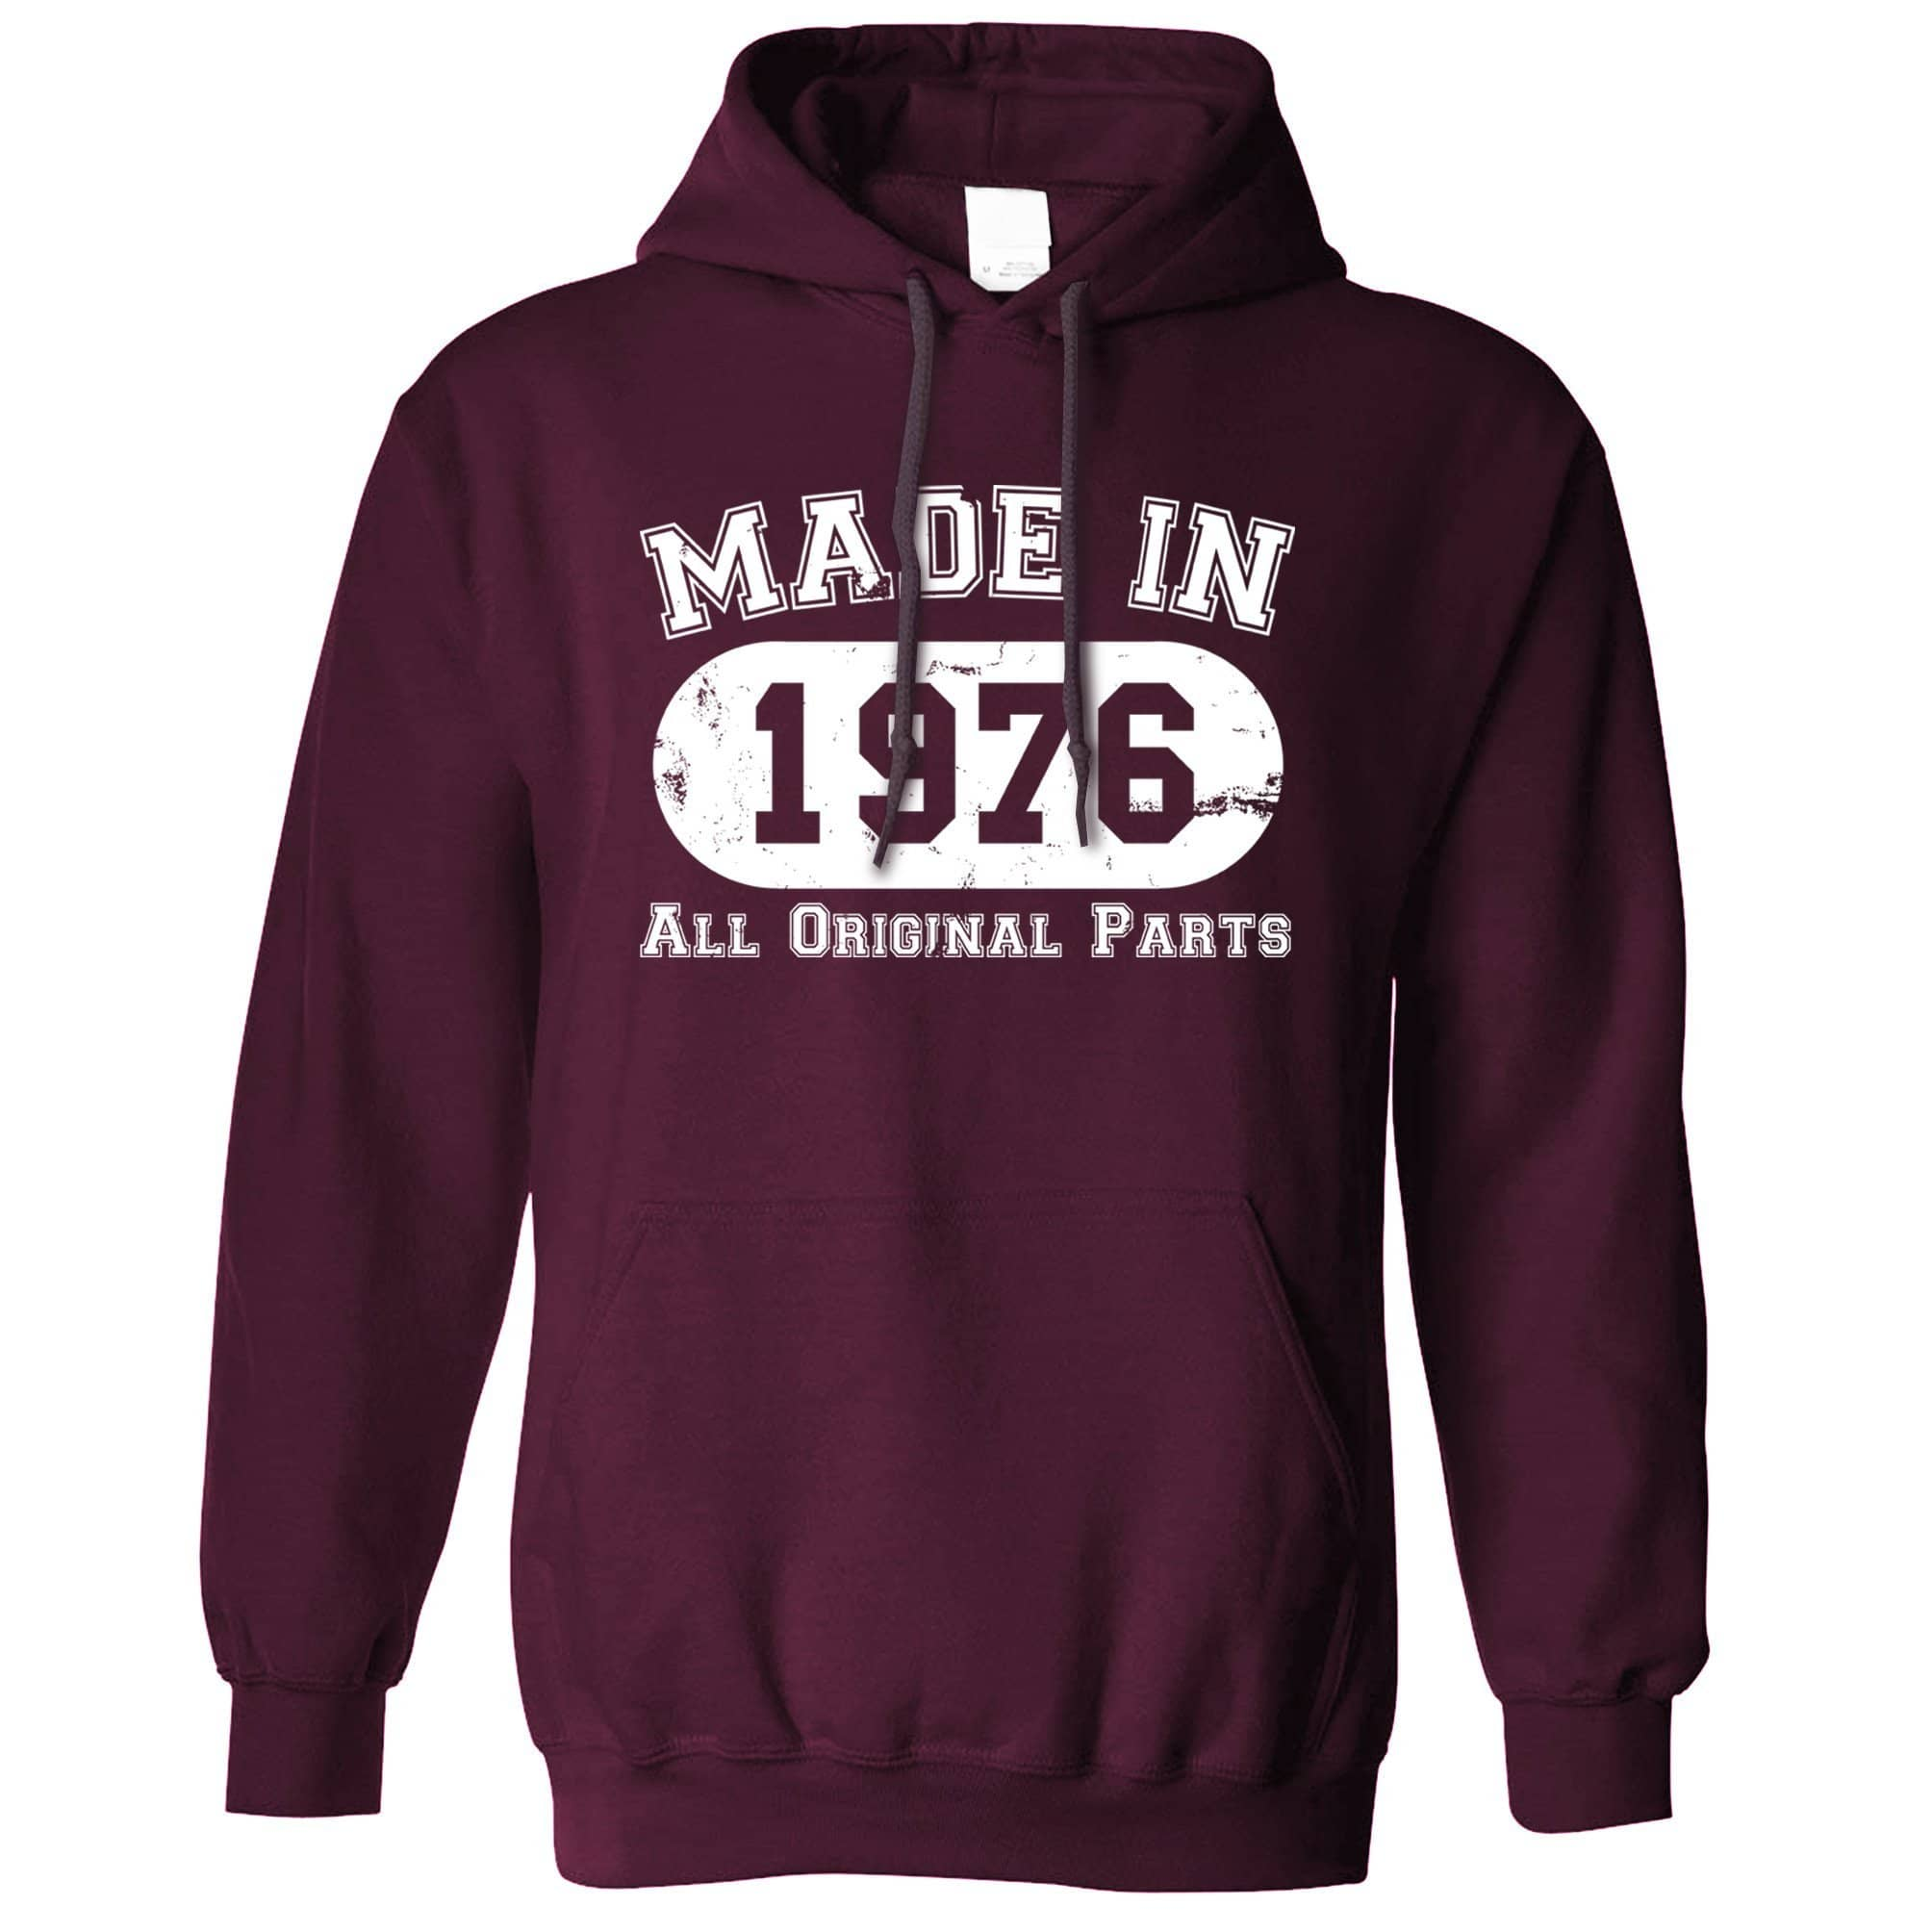 Made in 1976 All Original Parts Hoodie [Distressed]